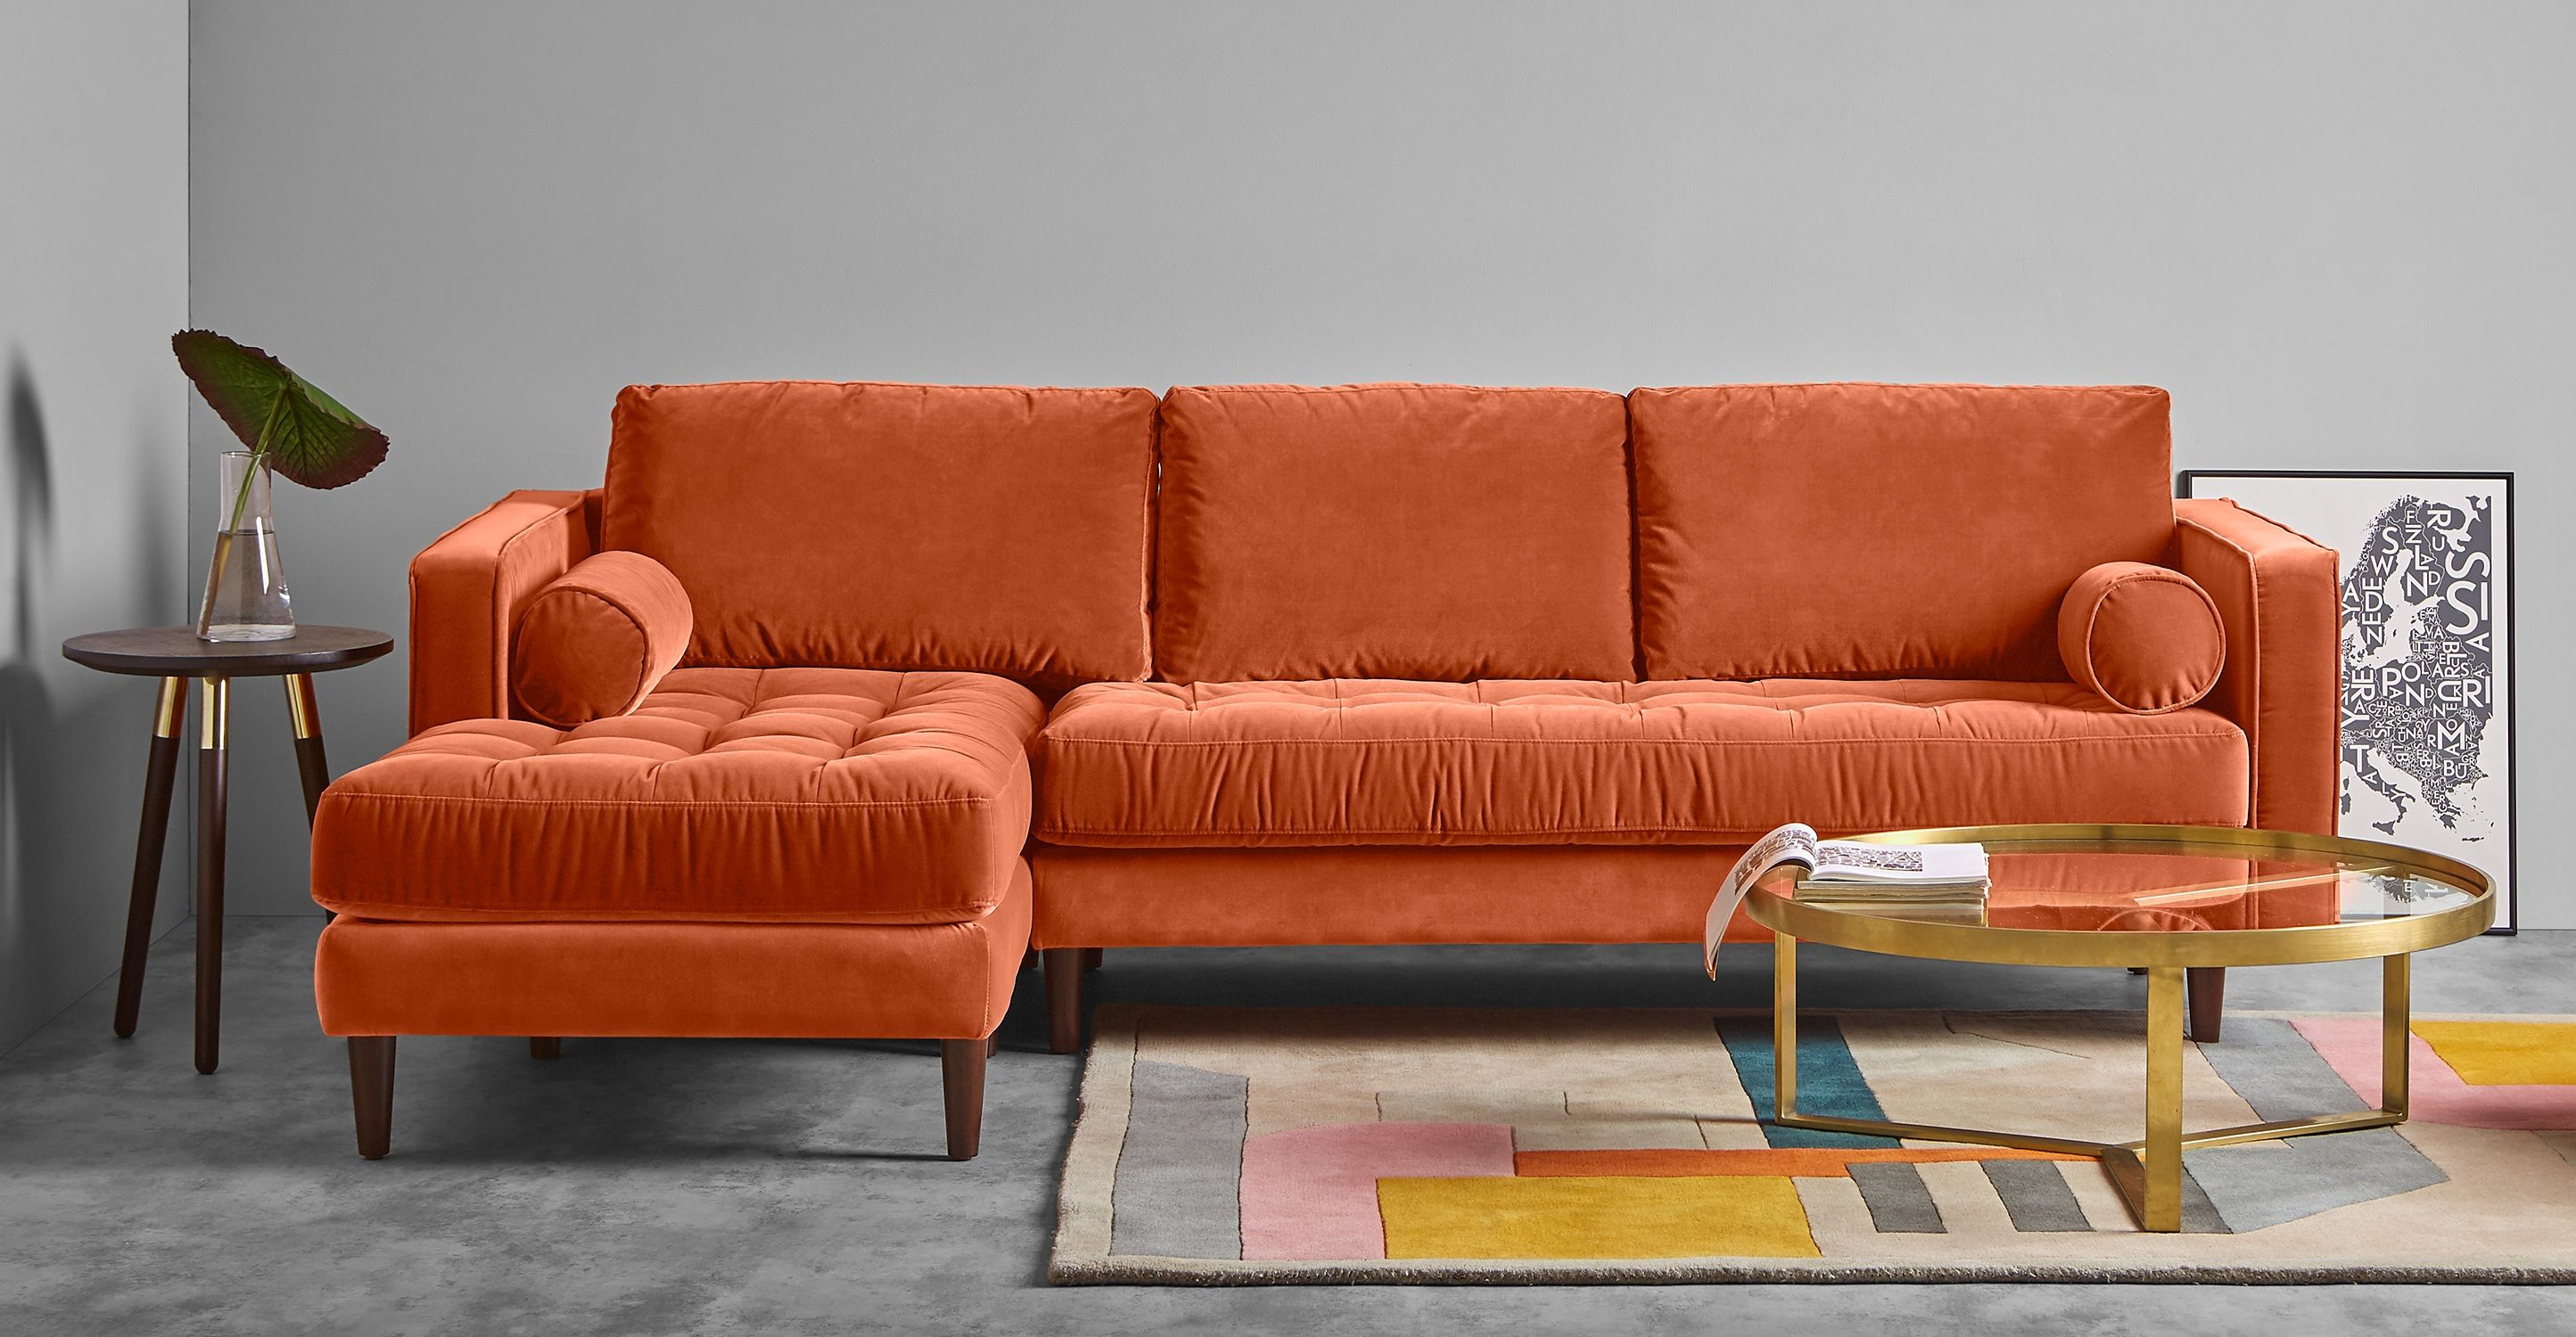 Gut Gut Scott Ecksofa (Récamiere Links), Samt In Rostorange | Made.com